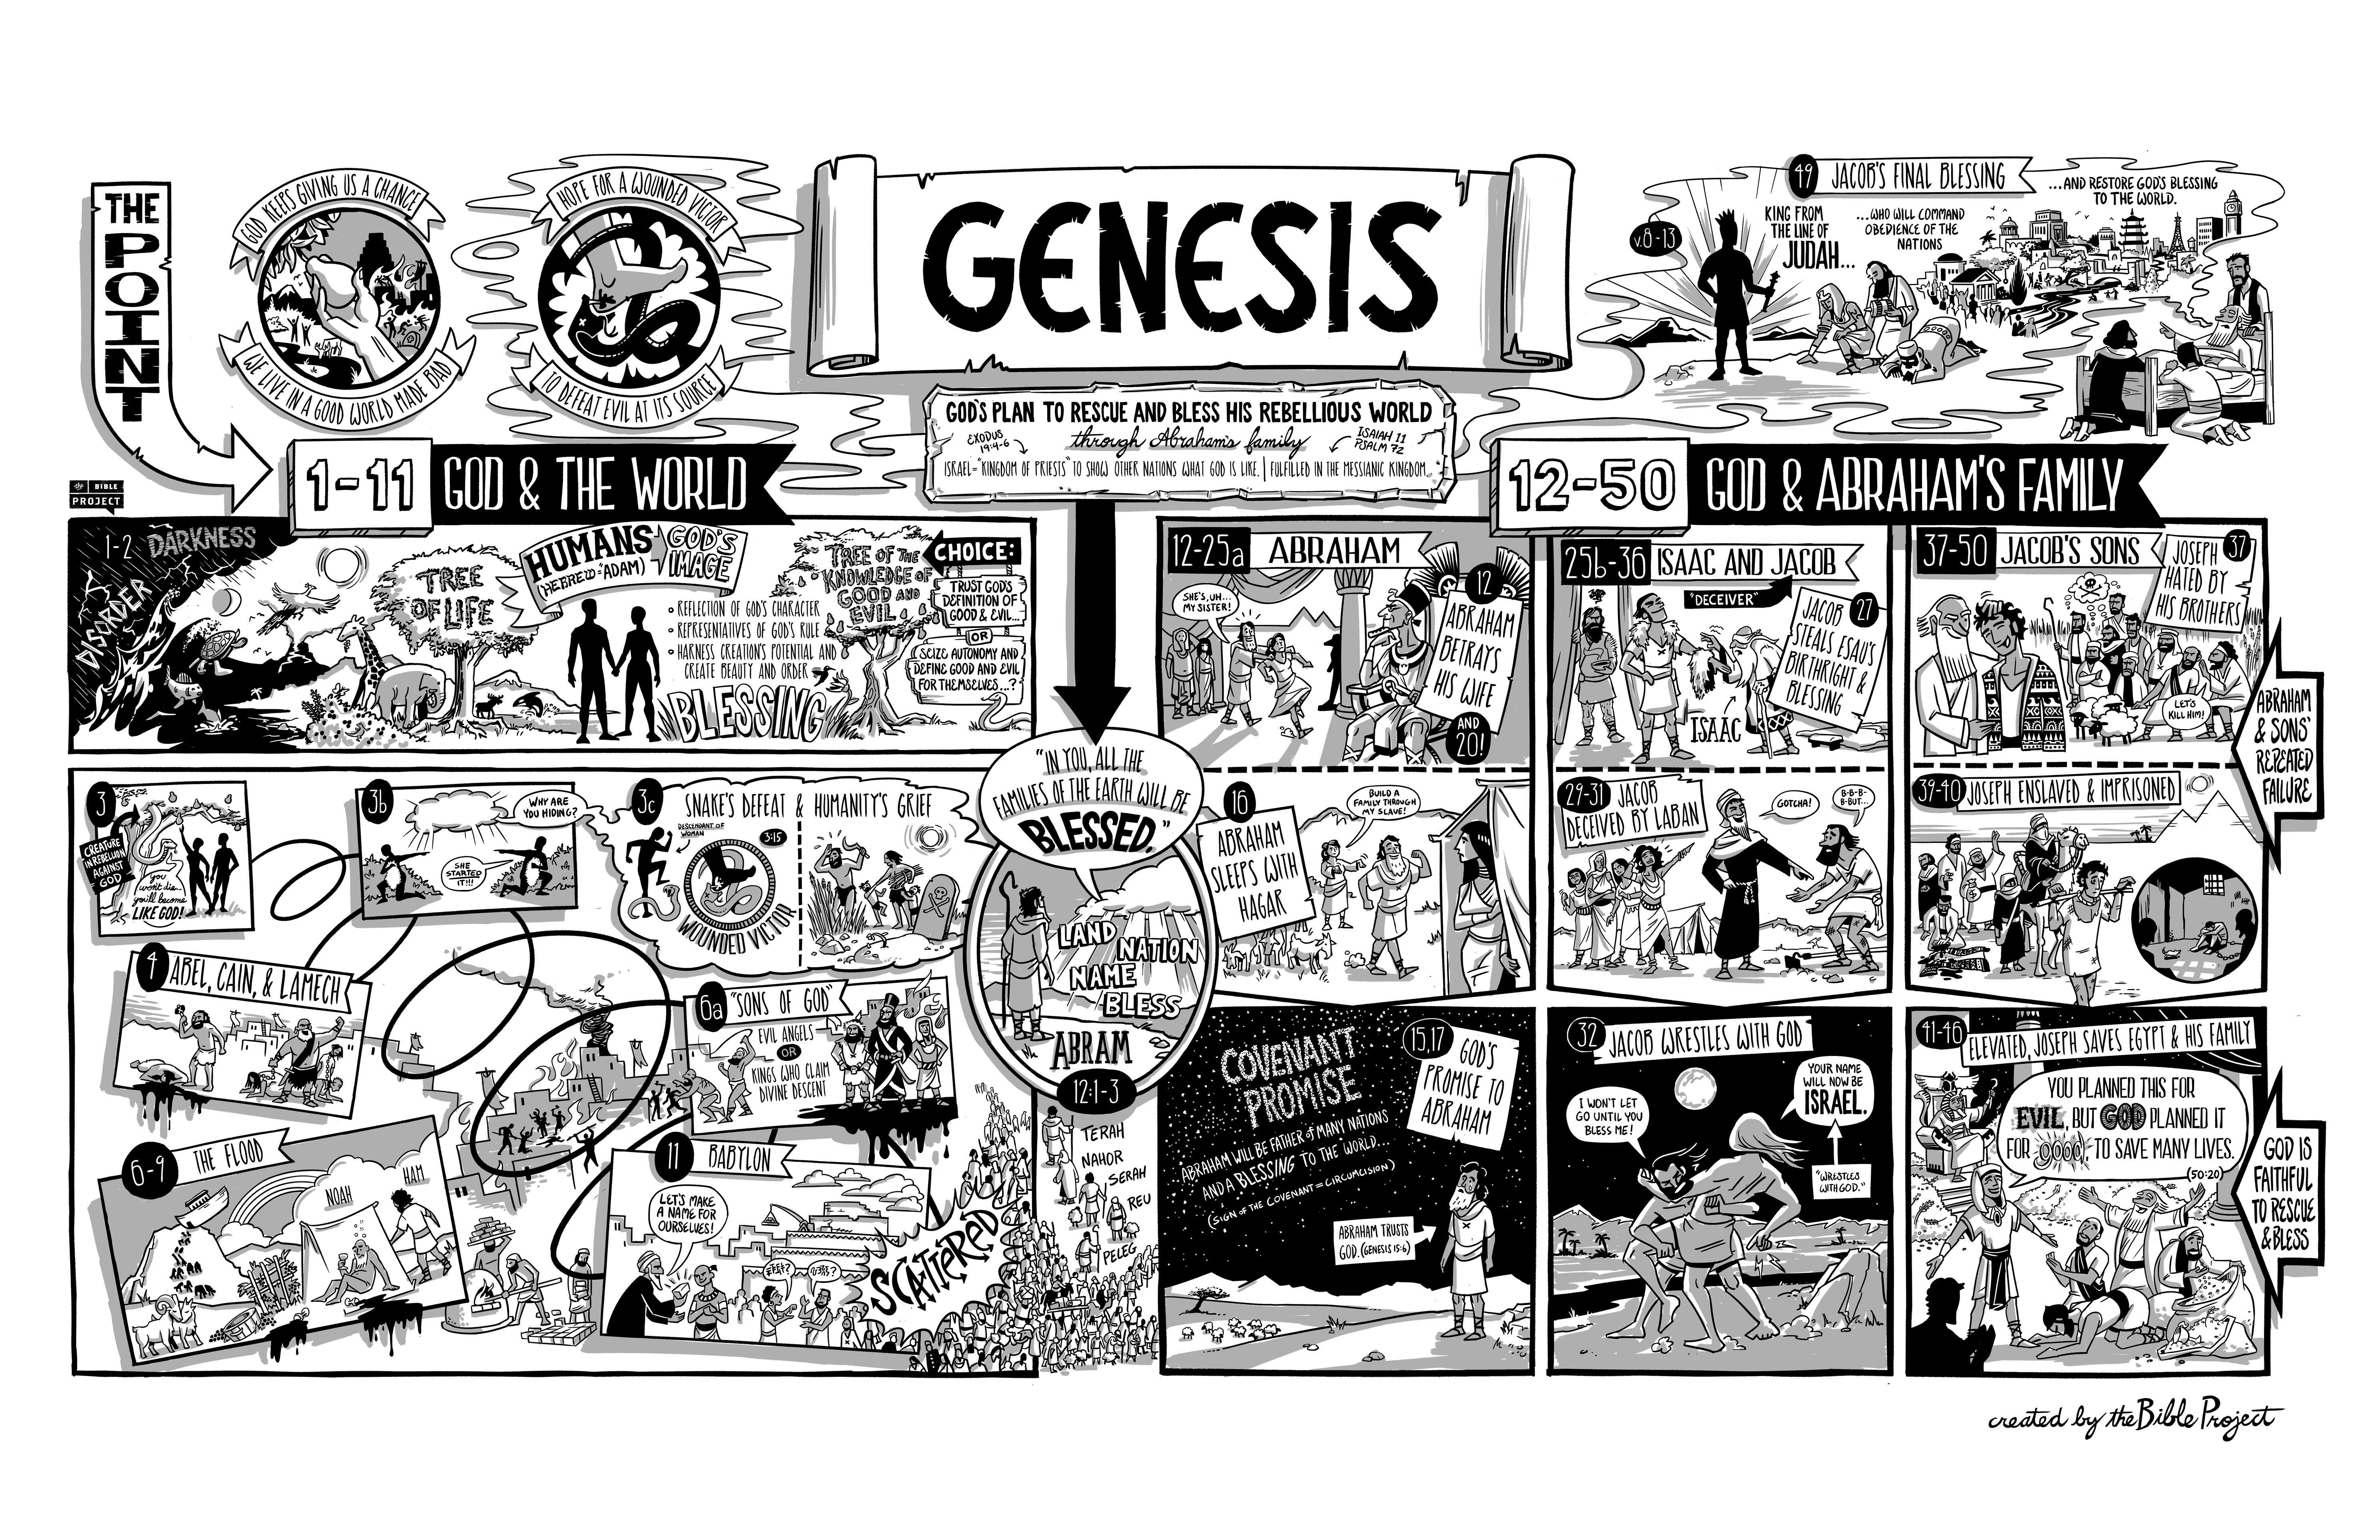 book of genesis  poster  visual summary  book and chapter